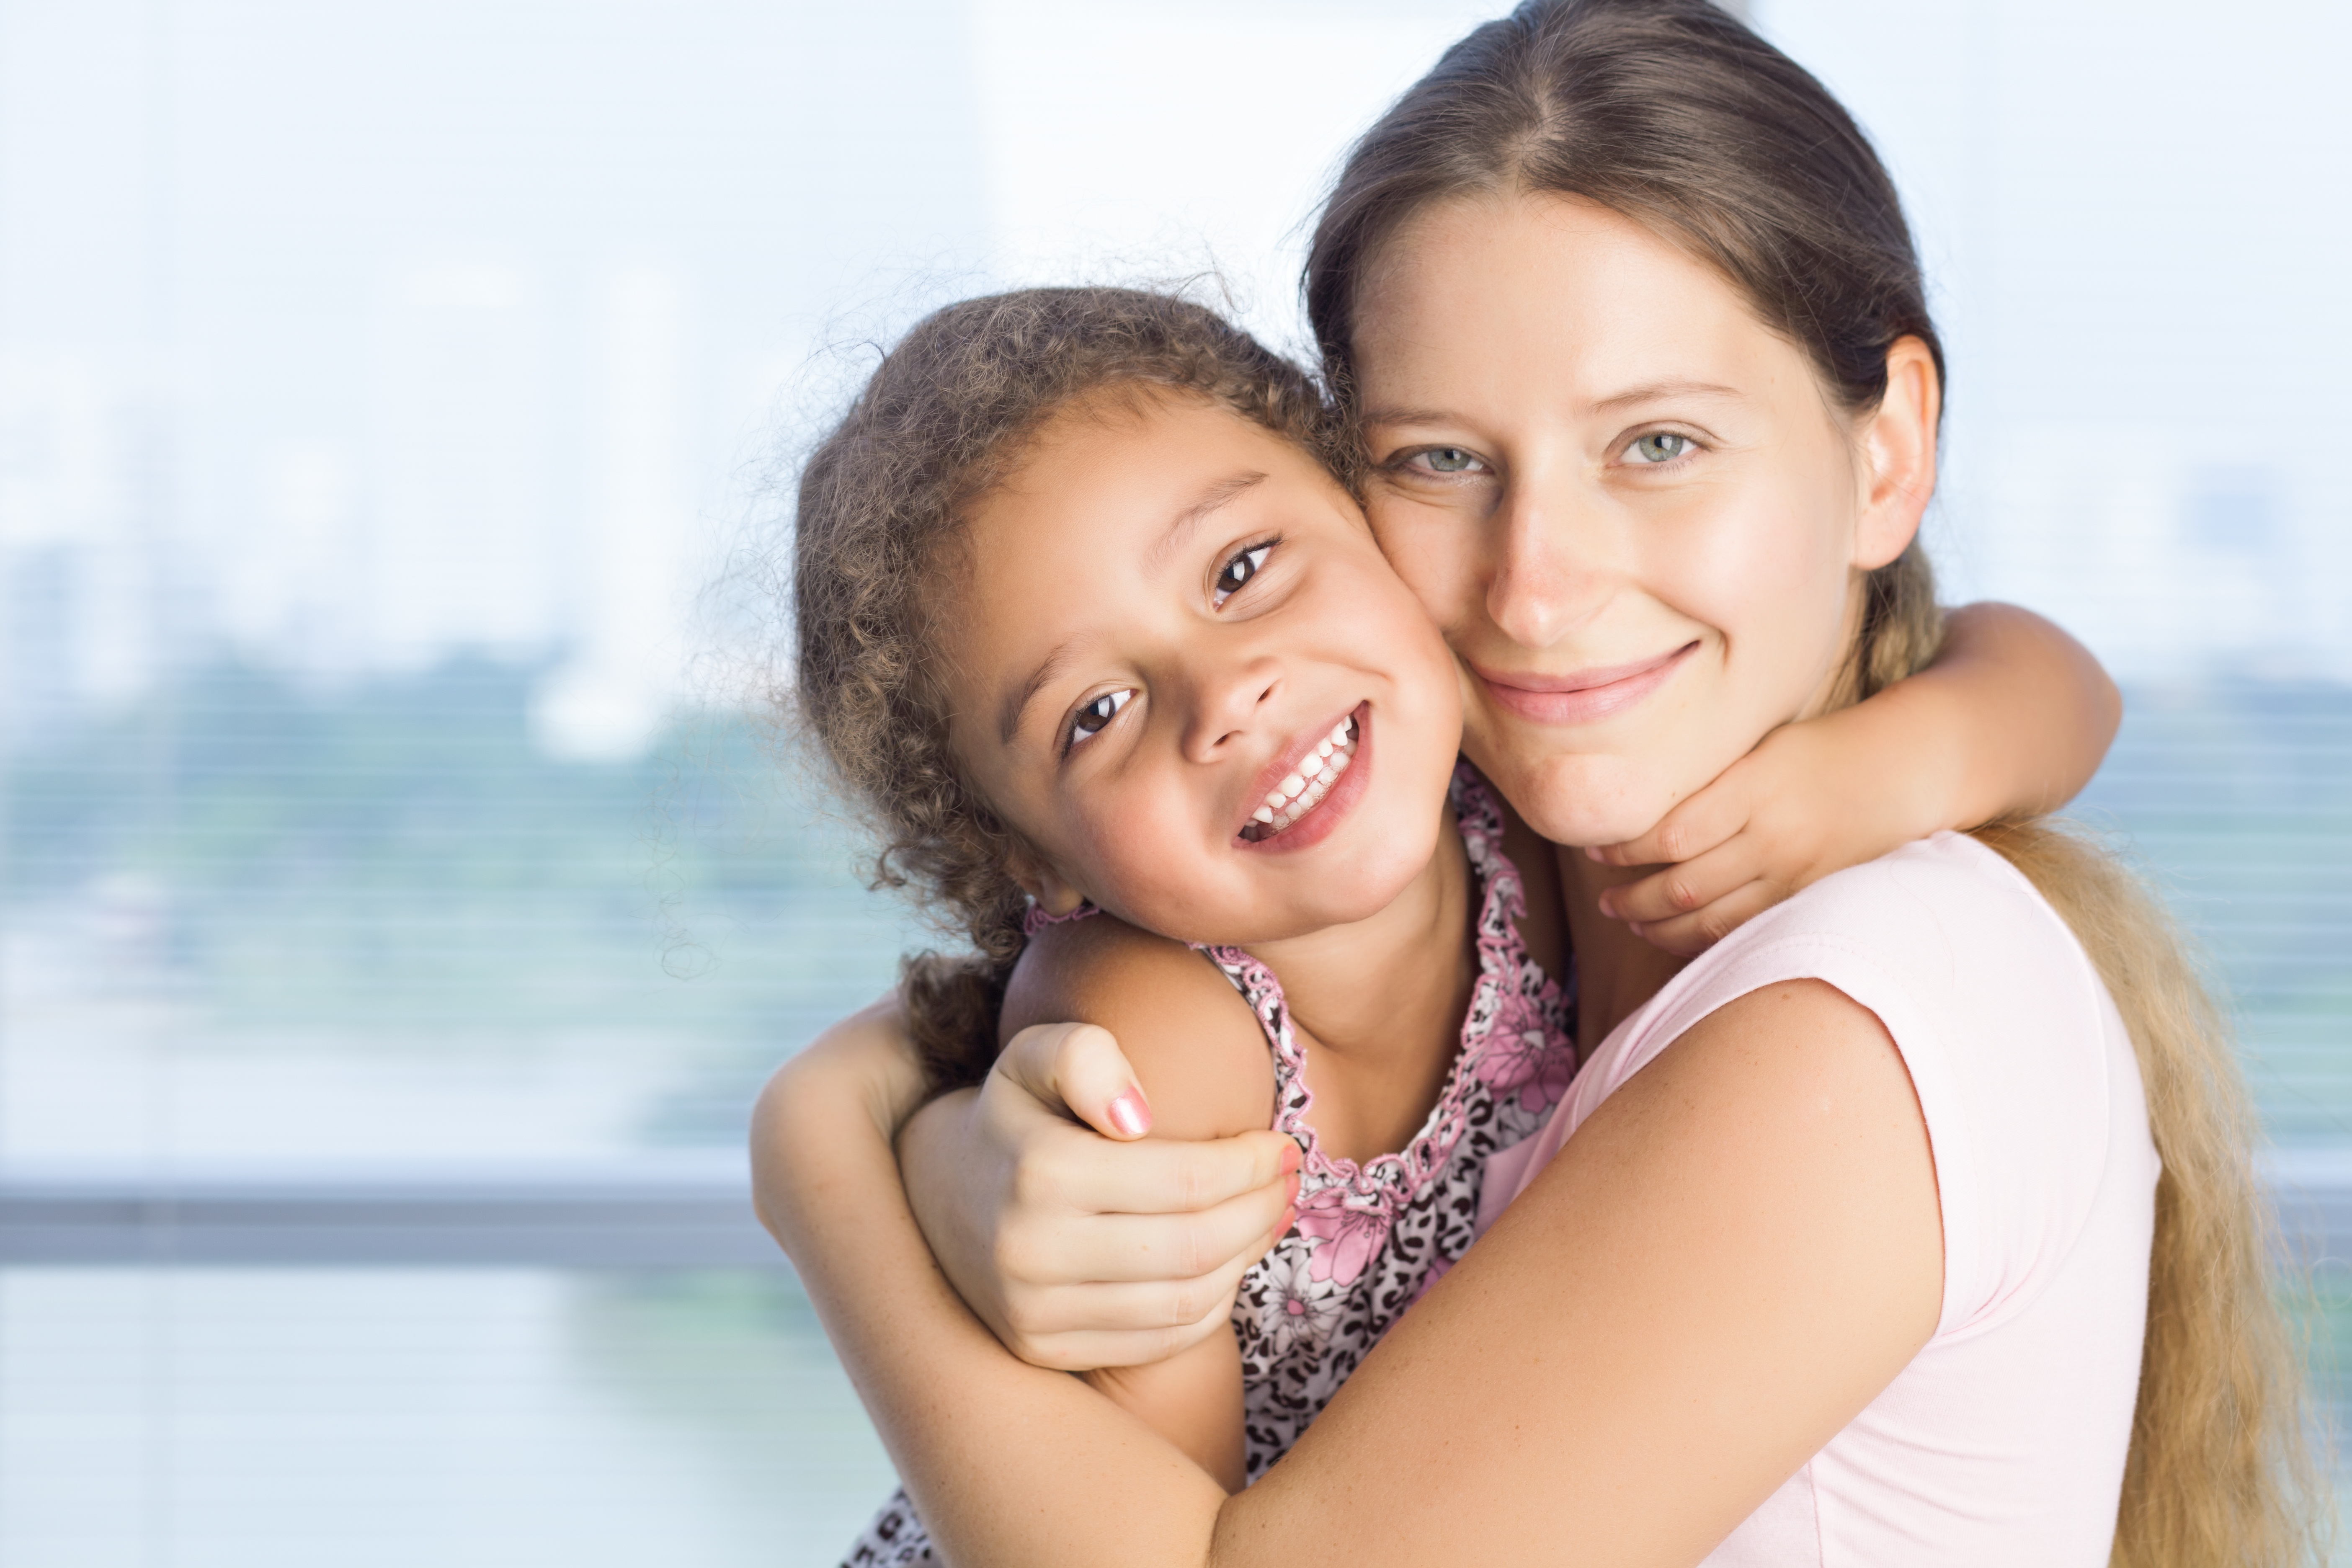 the bond between mother and child essay Love between mother and child  it is a fact that from conception both a physical and an emotional bond are created between mother and child physically,.